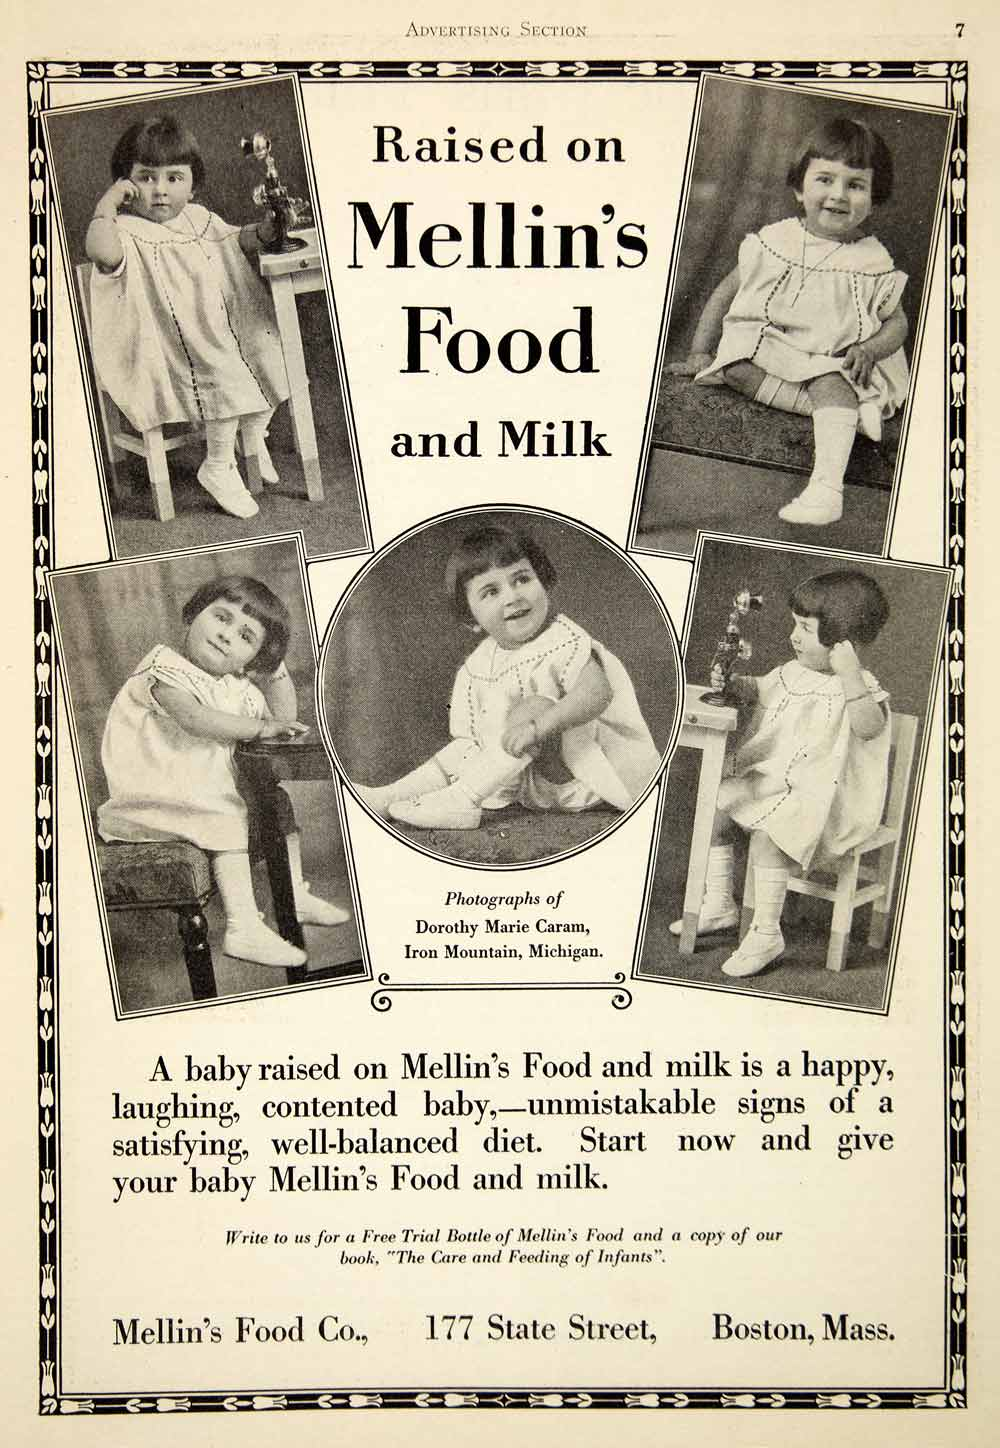 1925 Ad Mellin's Food Milk Baby Infant Dorothy Marie Caram 177 State Street PPM1